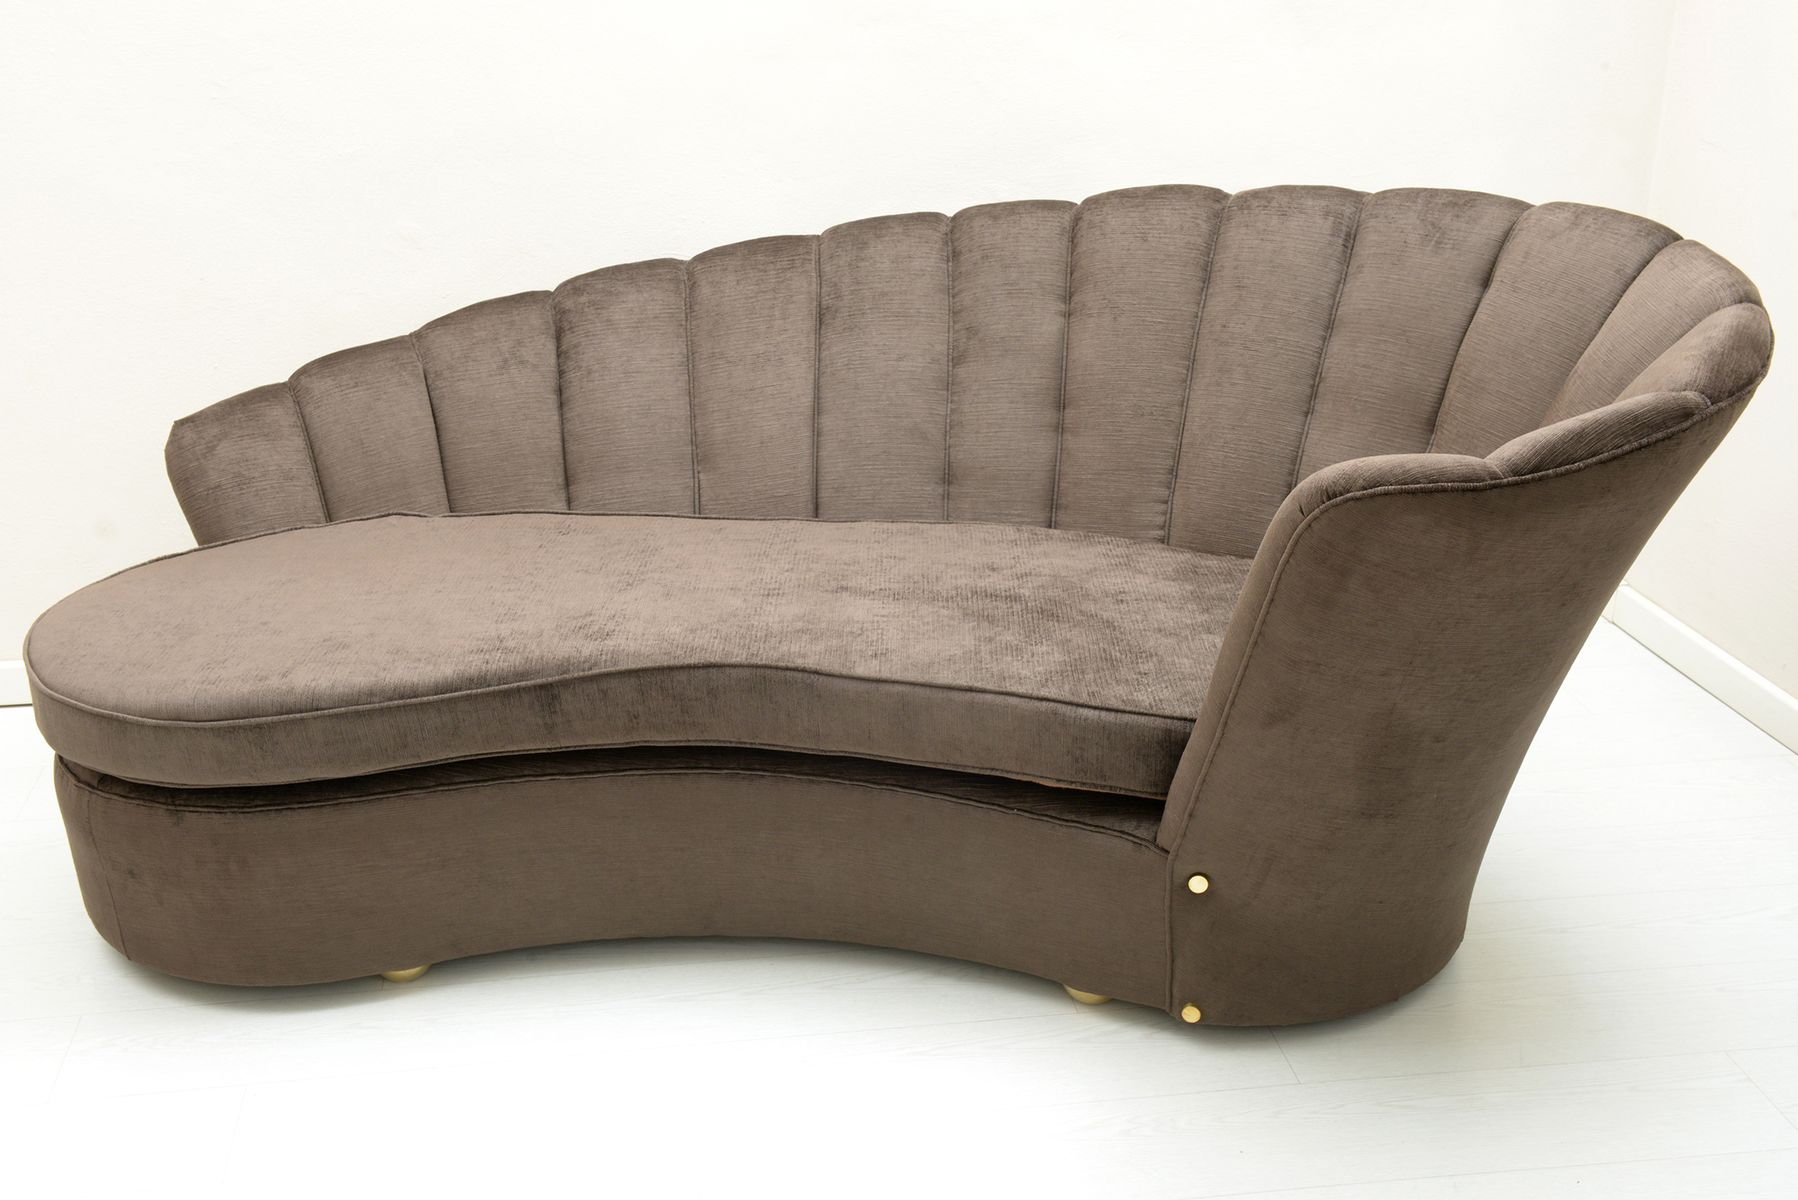 important curved sofa by arch marzio cecchi firenze 1970